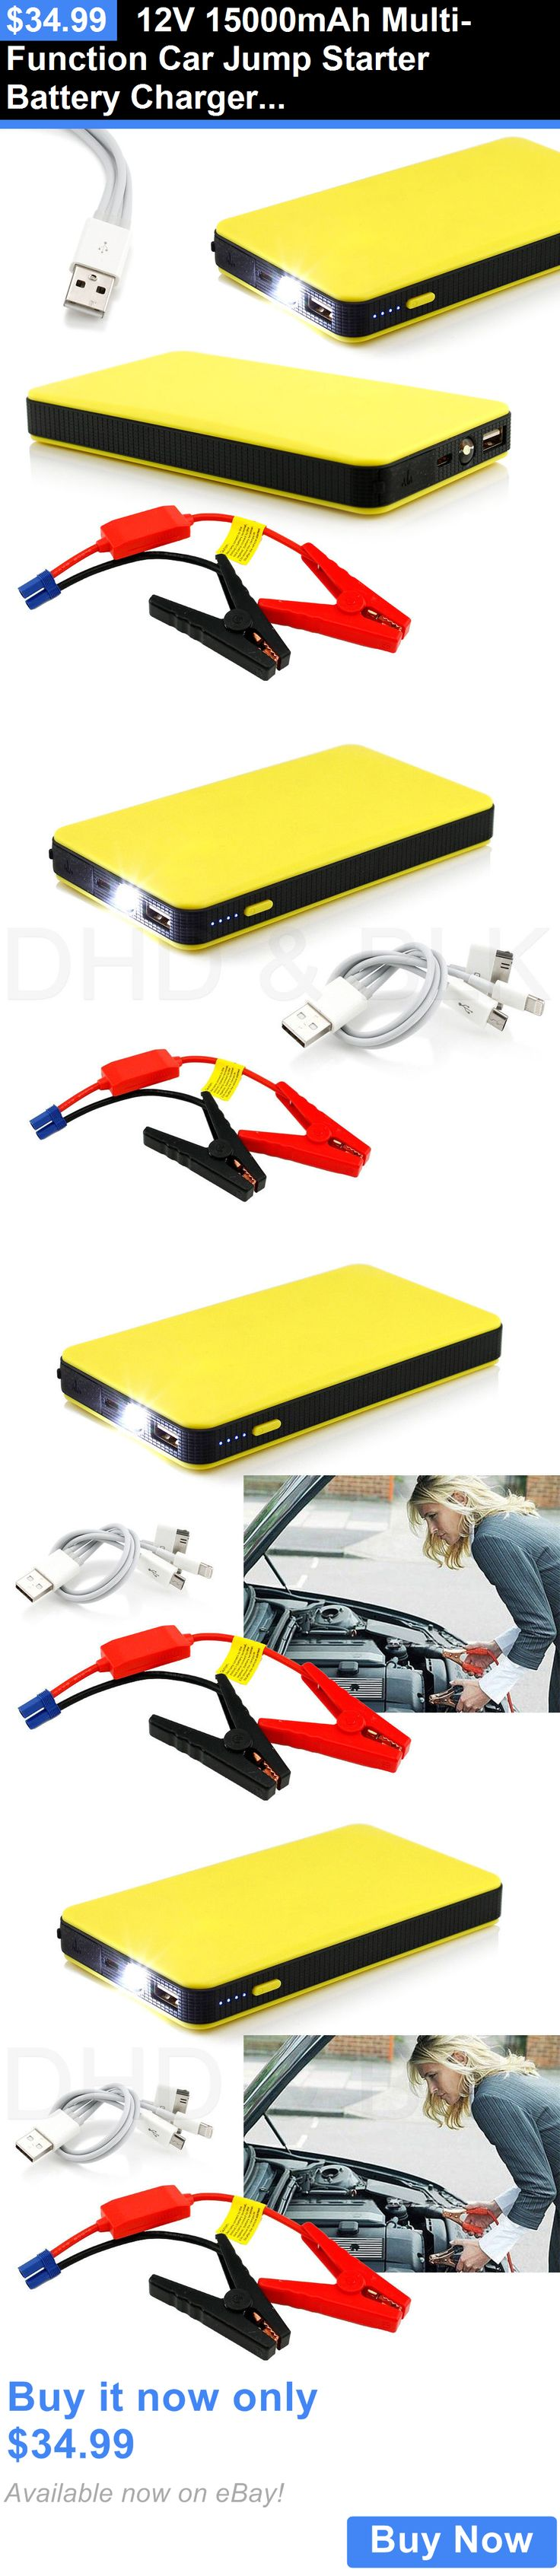 Motors Parts And Accessories: 12V 15000Mah Multi-Function Car Jump Starter Battery Charger Power Bank Booster BUY IT NOW ONLY: $34.99